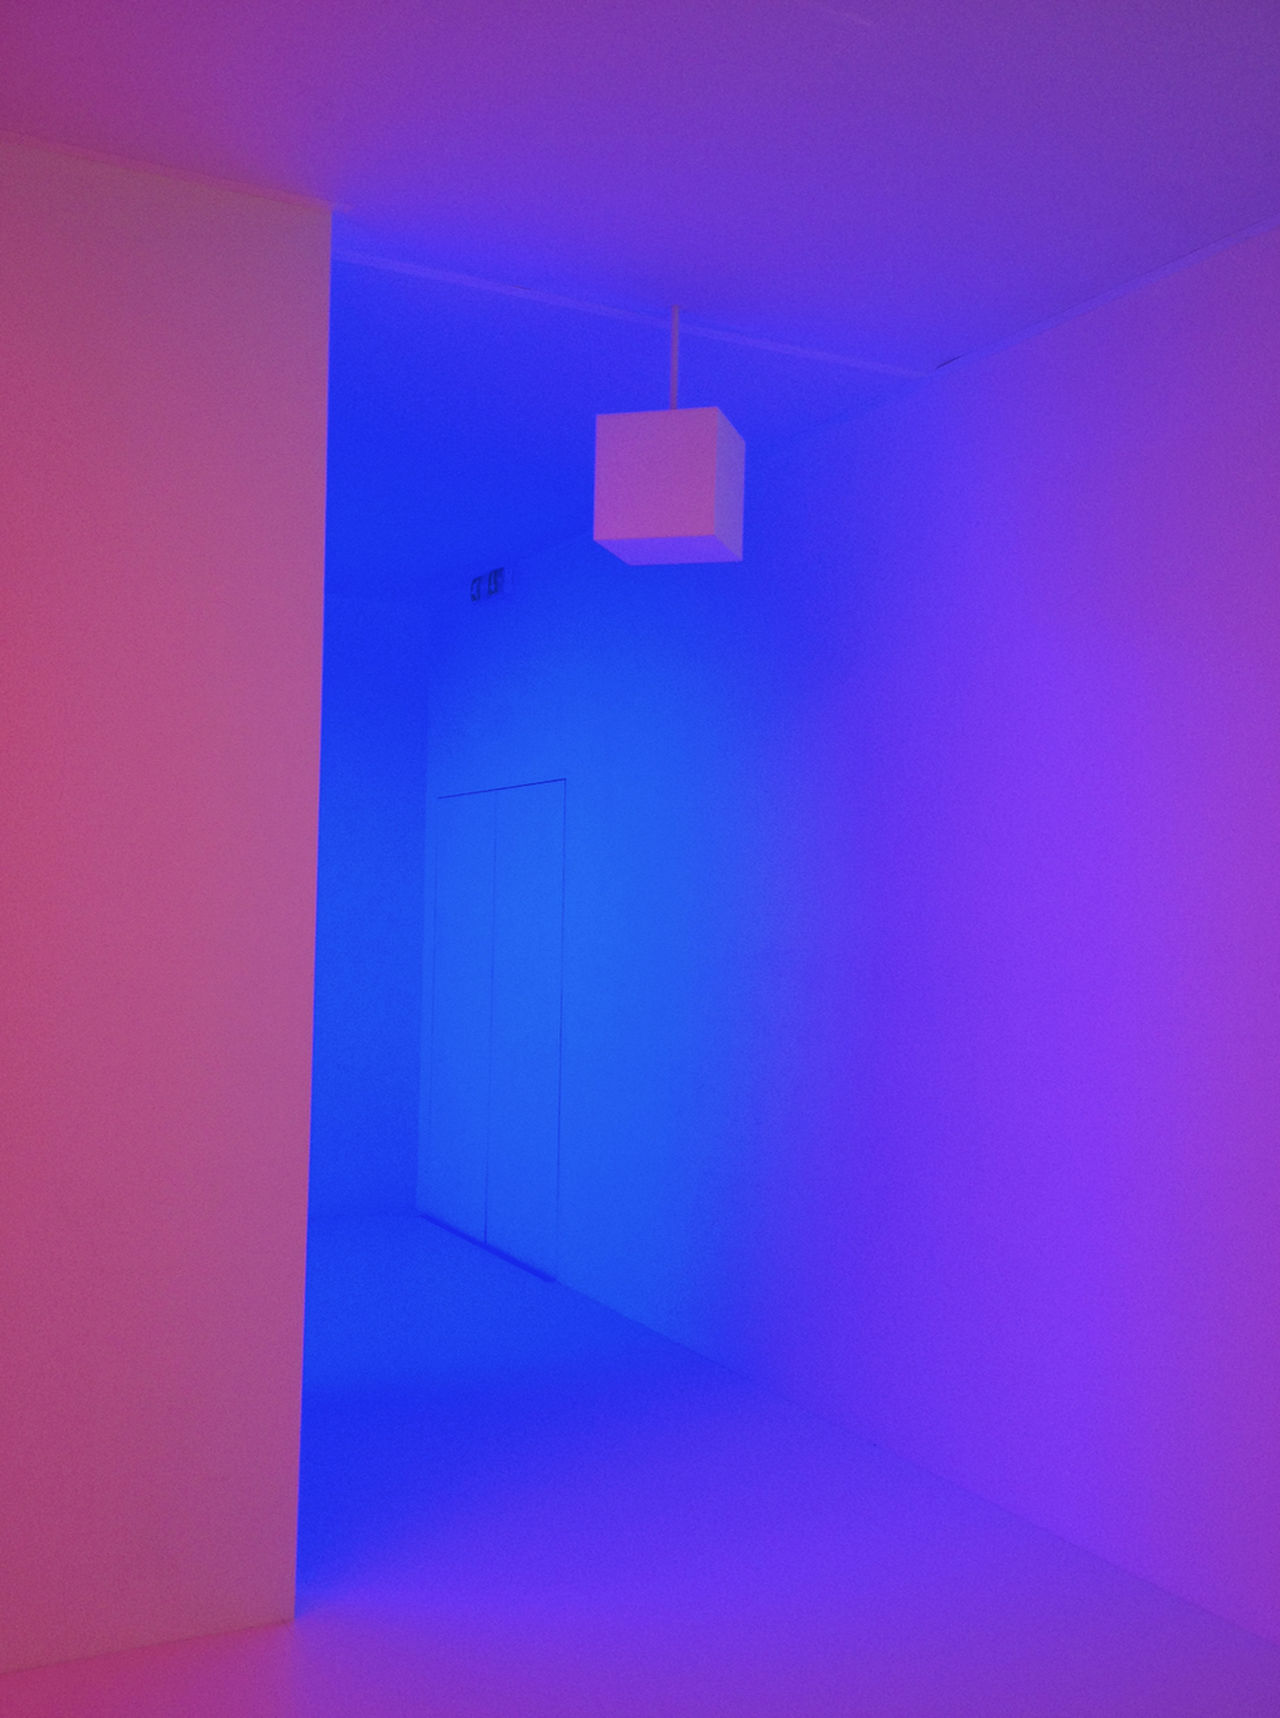 Abstract Art Backgrounds Blue Blue And Pink Blueyes Bright Blue Sky Bright Colours Built Structure Close-up Cool Color Cool Colors Cool Colours Door Electricity  Indoors  Light Light And Shadow Light Sculpture Light Show Lil Mauritius No People Pink Color Pinky Blue